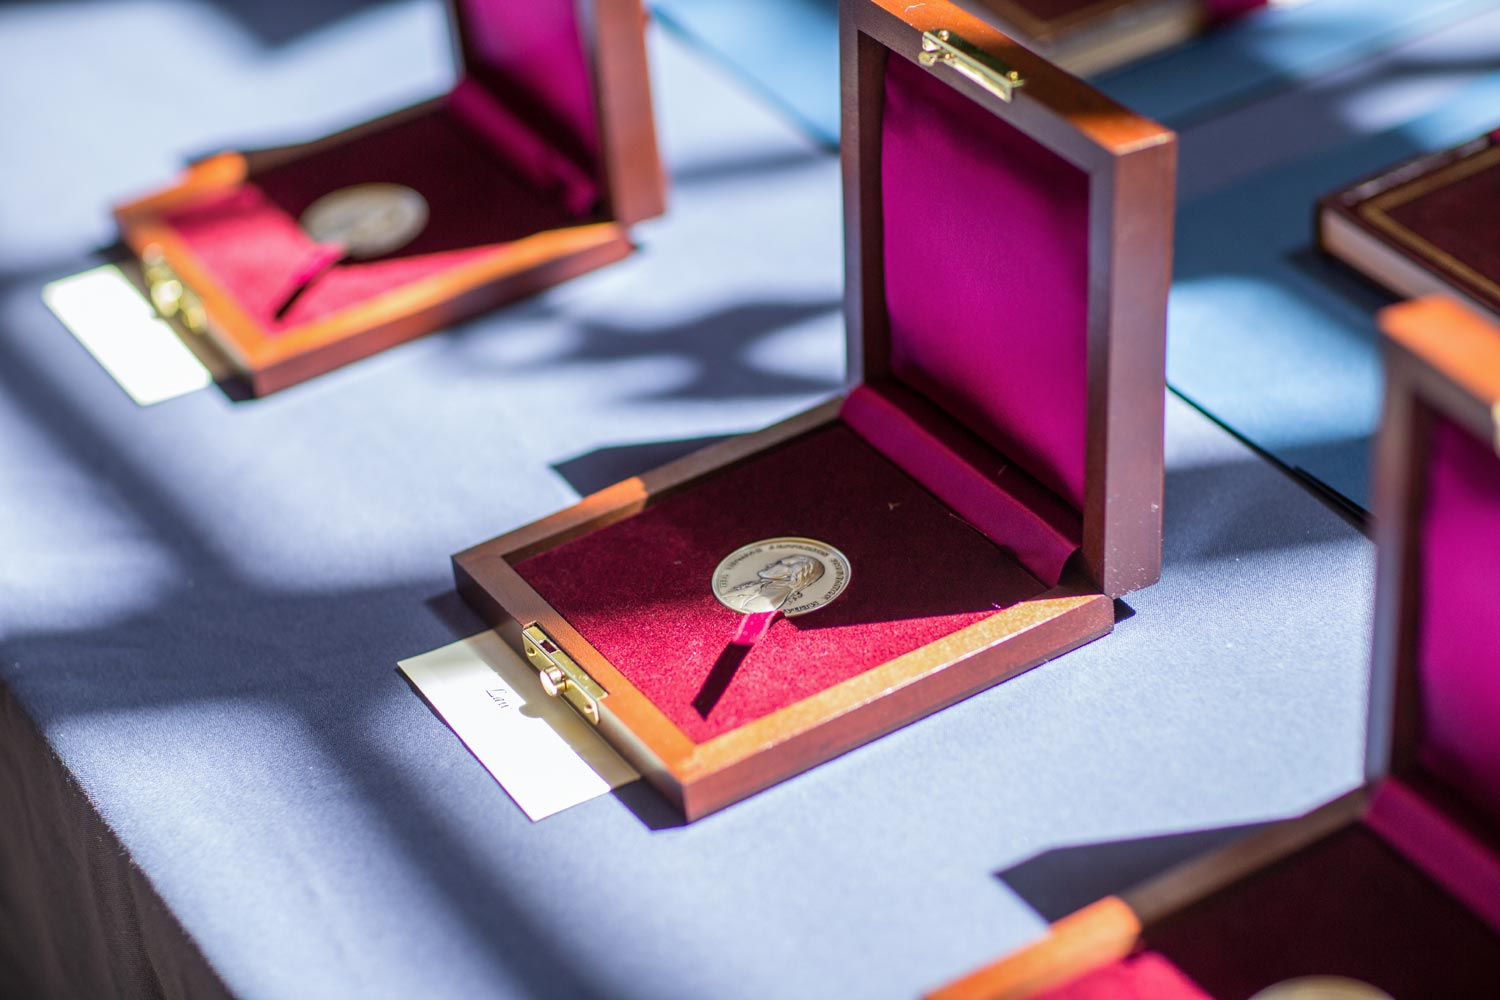 The Thomas Jefferson Foundation Medals will be awarded during Founder's Day celebrations in April. (Photo by Sanjay Suchak, University Communications)